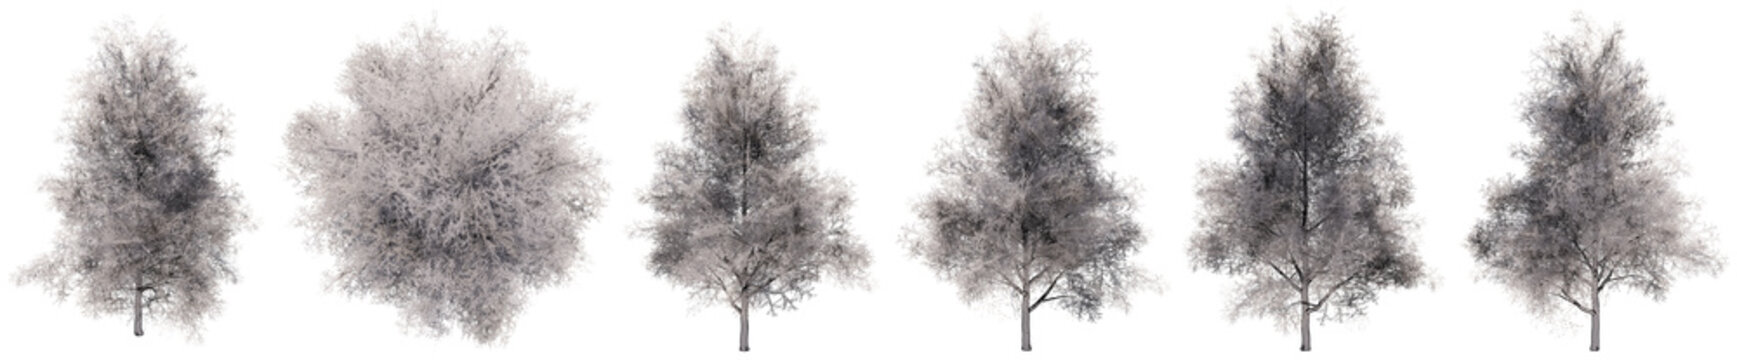 Set or collection of drawings of Ginkgo trees isolated on white background . Concept or conceptual 3d illustration for nature, ecology and conservation, strength and endurance, force and life